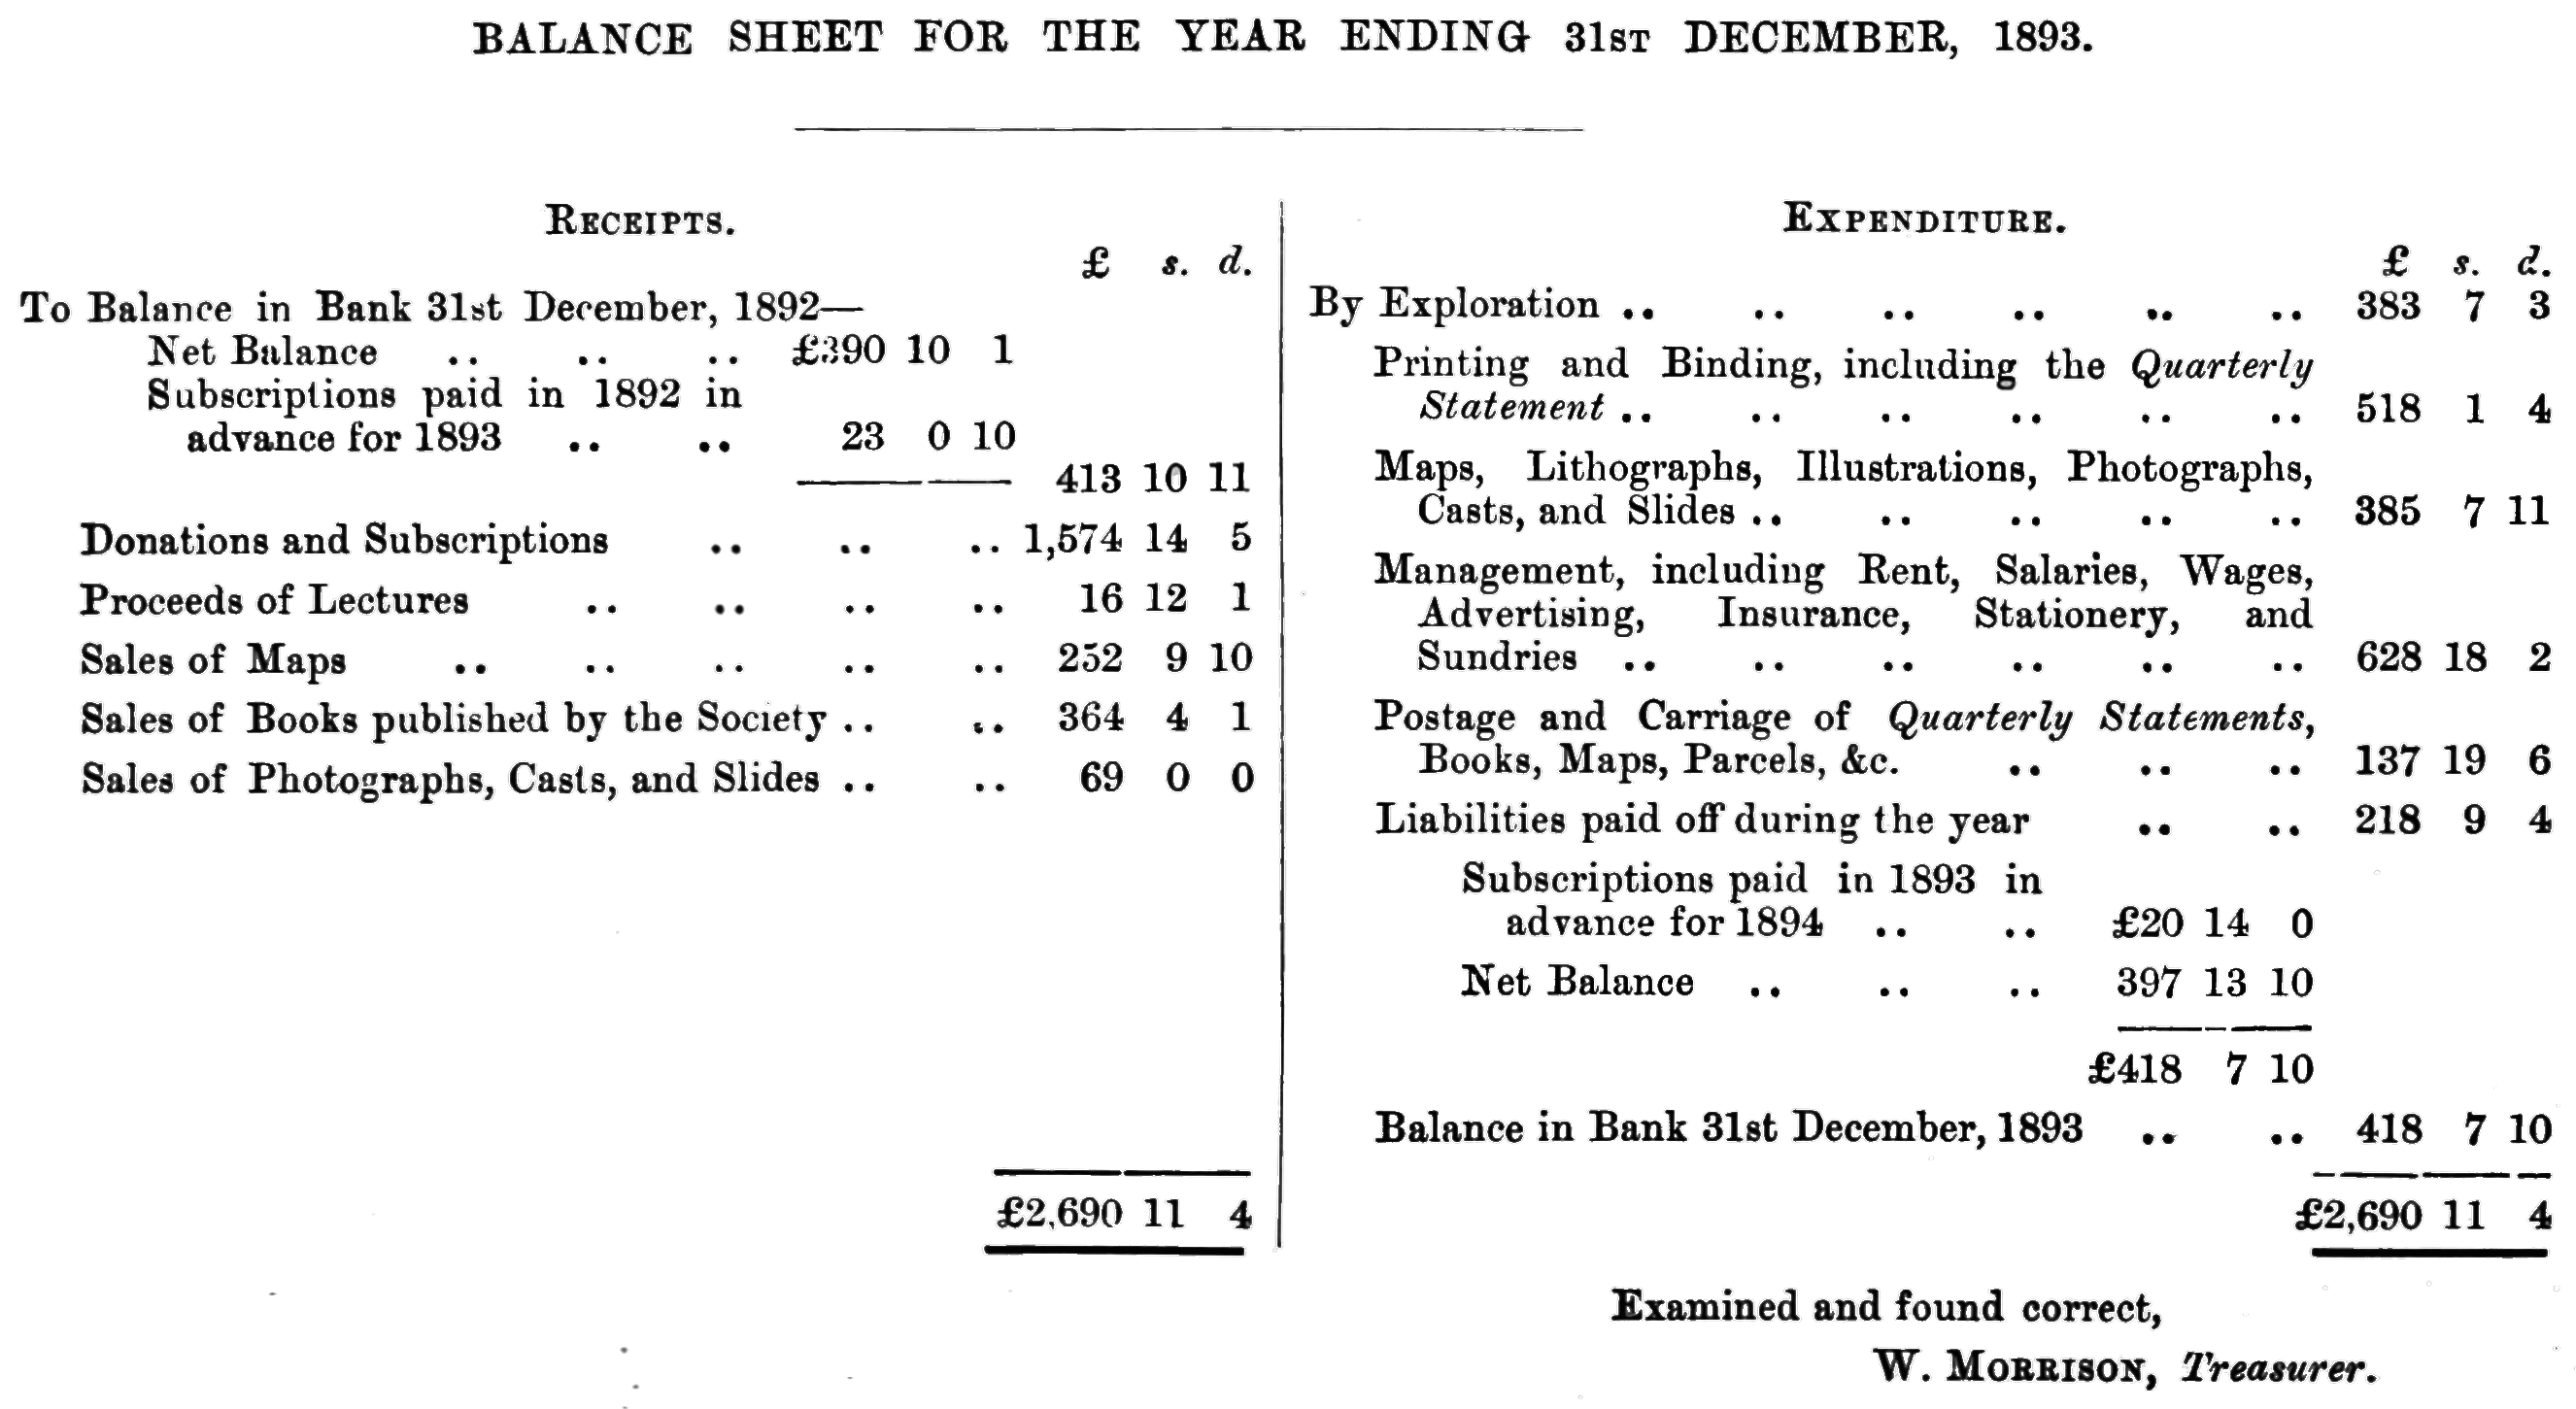 File Pef D122 Balance Sheet For The Year Ending 12 31